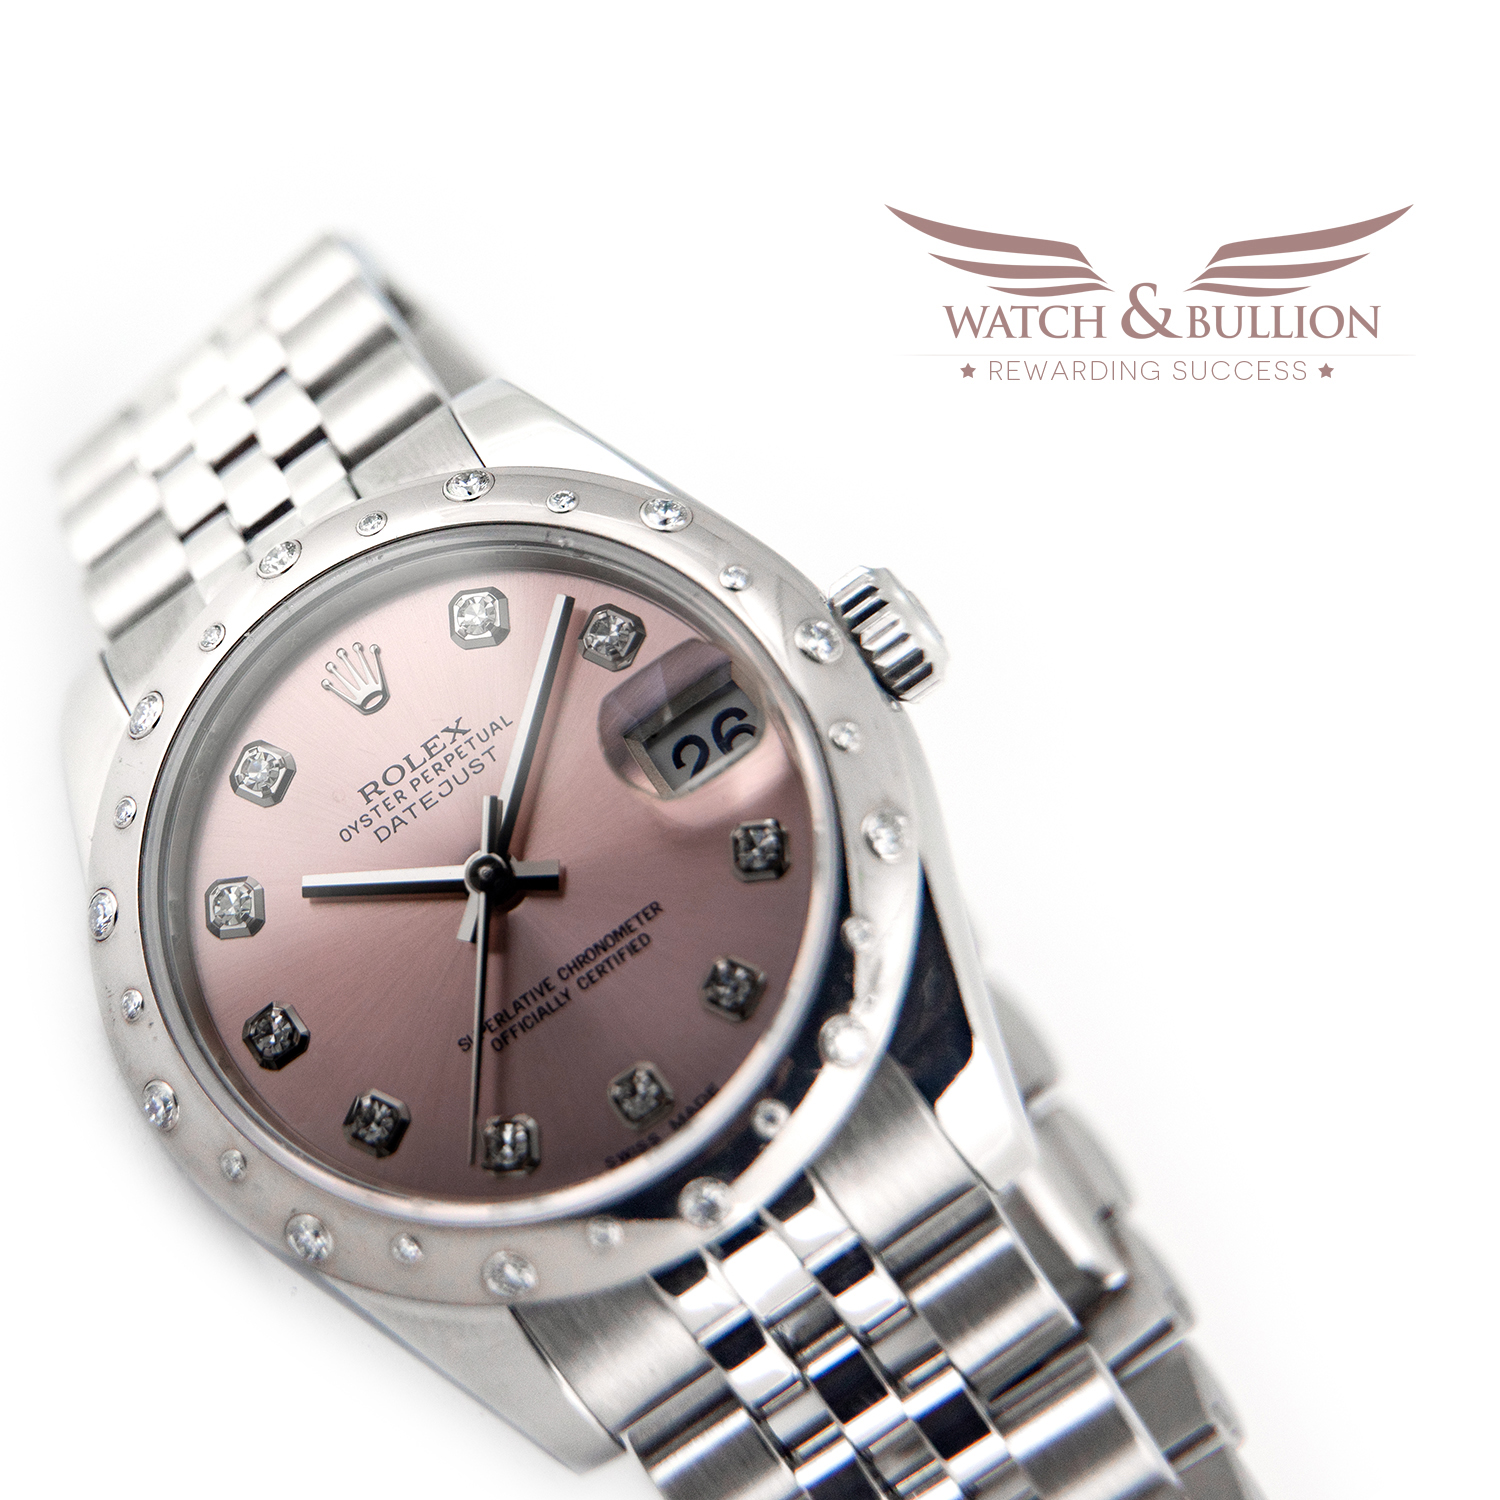 Rolex Lady-Datejust 31mm Oystersteel White Gold and Diamonds